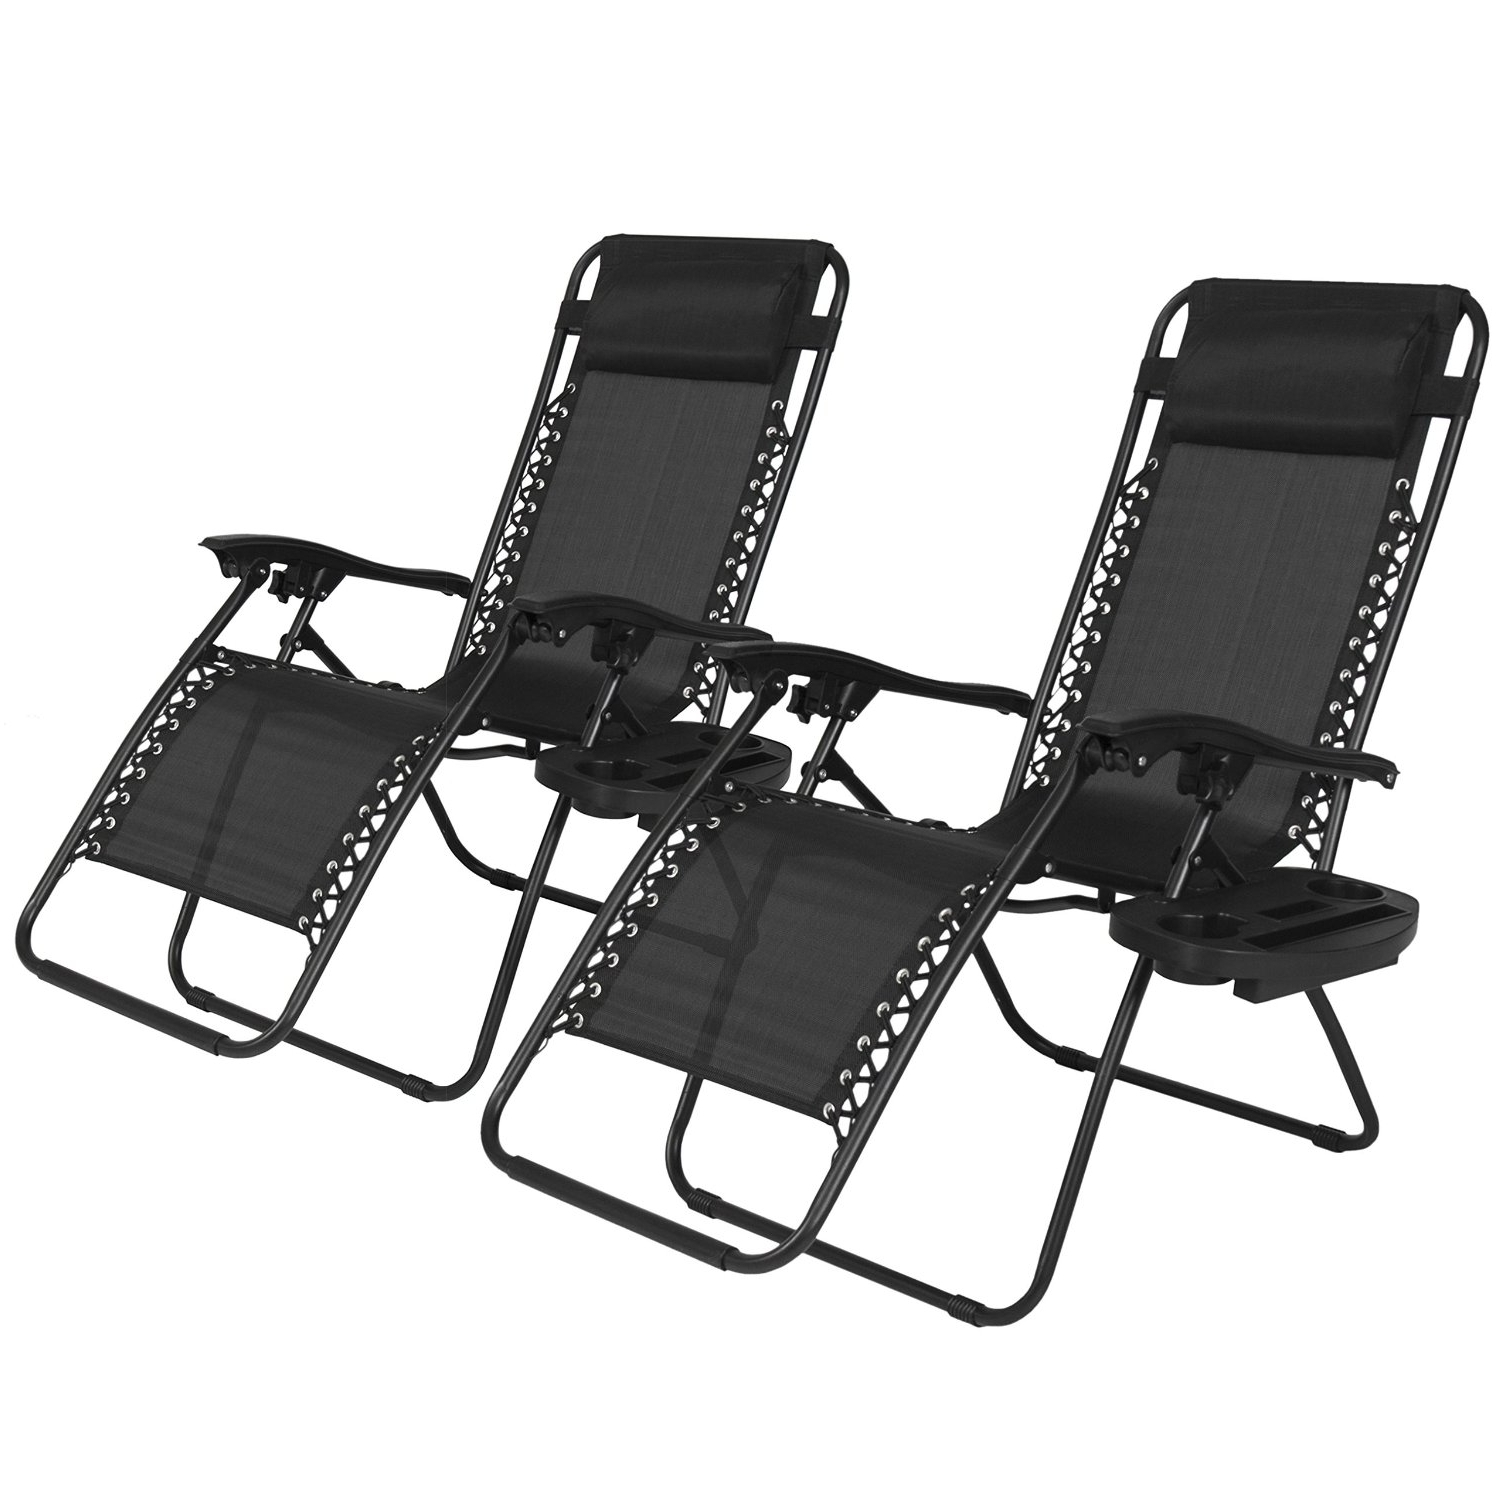 [%Top 10 Best Zero Gravity Chair Reviews – Find Yours [2018] With Regard To Widely Used Zero Gravity Chaise Lounge Chairs|Zero Gravity Chaise Lounge Chairs Inside Fashionable Top 10 Best Zero Gravity Chair Reviews – Find Yours [2018]|Newest Zero Gravity Chaise Lounge Chairs Throughout Top 10 Best Zero Gravity Chair Reviews – Find Yours [2018]|Most Recently Released Top 10 Best Zero Gravity Chair Reviews – Find Yours [2018] Pertaining To Zero Gravity Chaise Lounge Chairs%] (View 1 of 15)